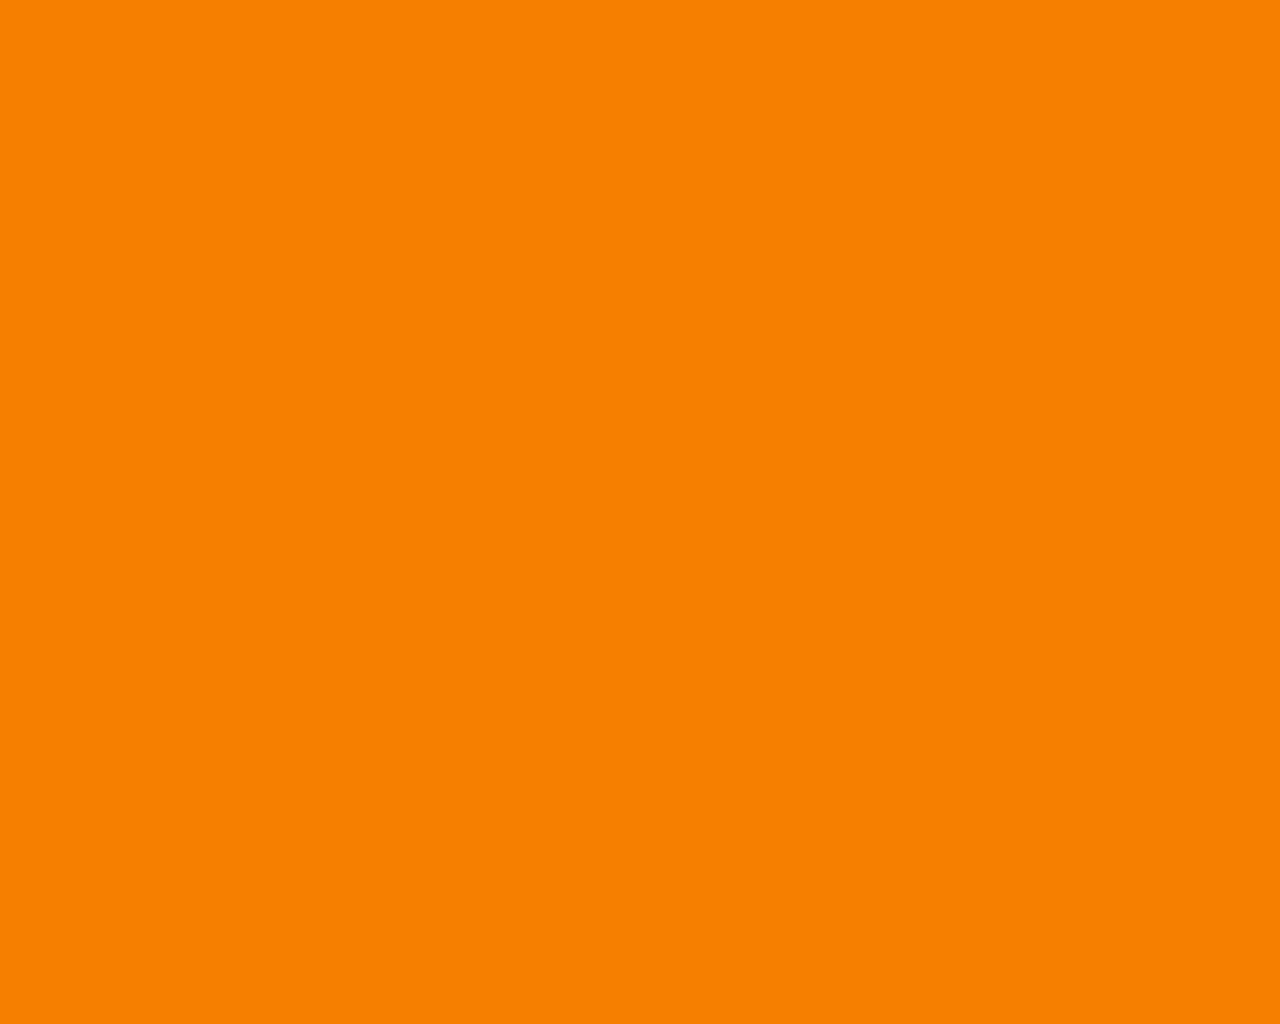 1280x1024 University Of Tennessee Orange Solid Color Background